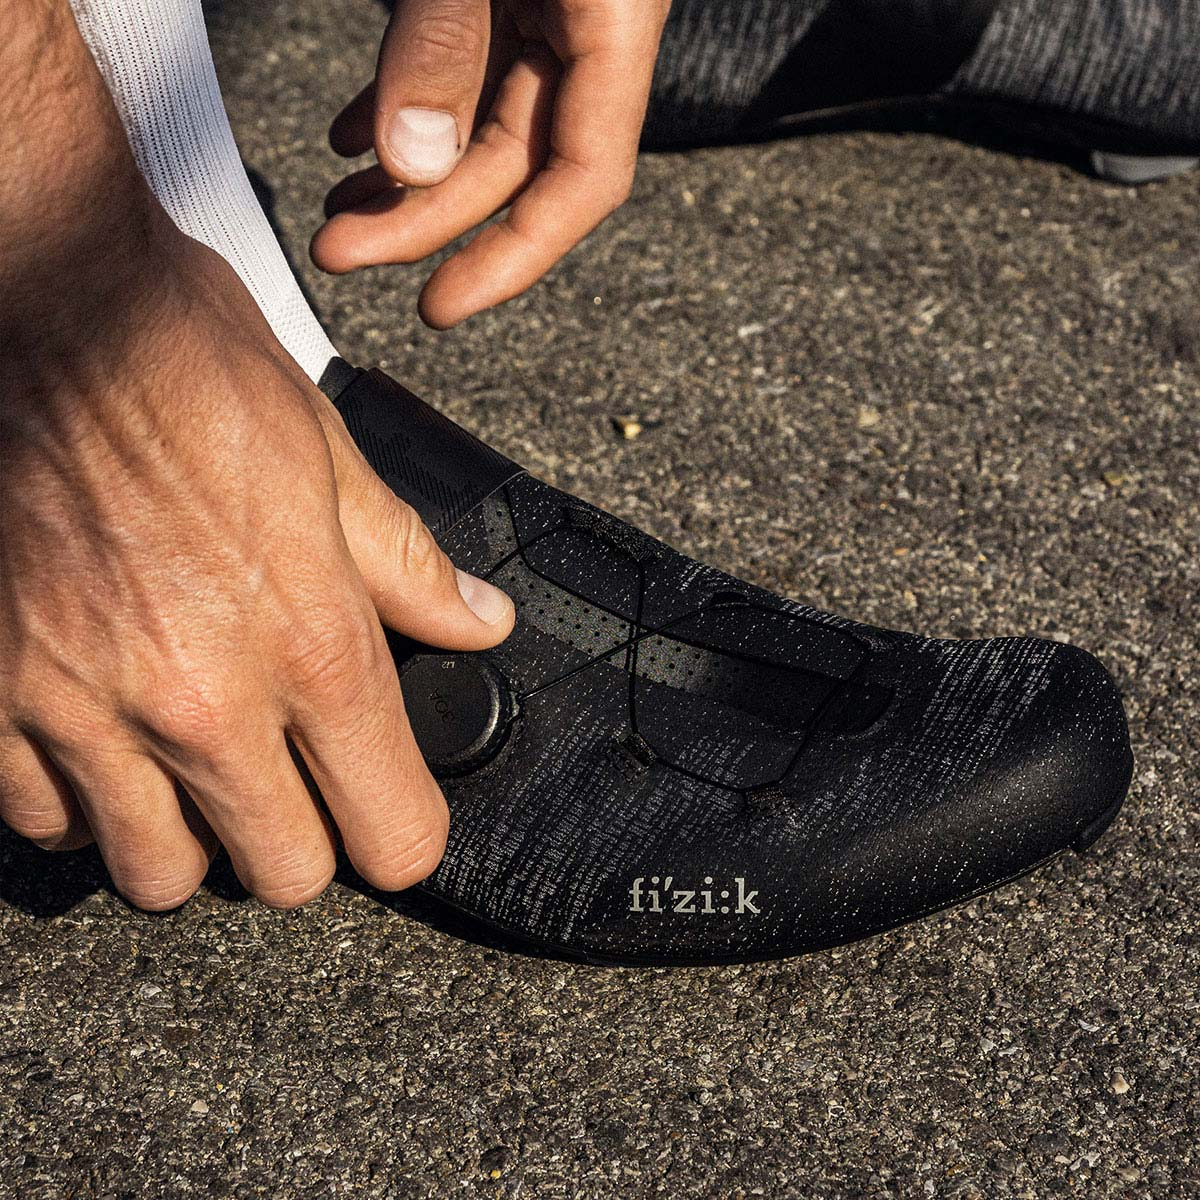 fizik-road-racing-cycling-shoes-vento-infinito-knit-carbon-2-wide